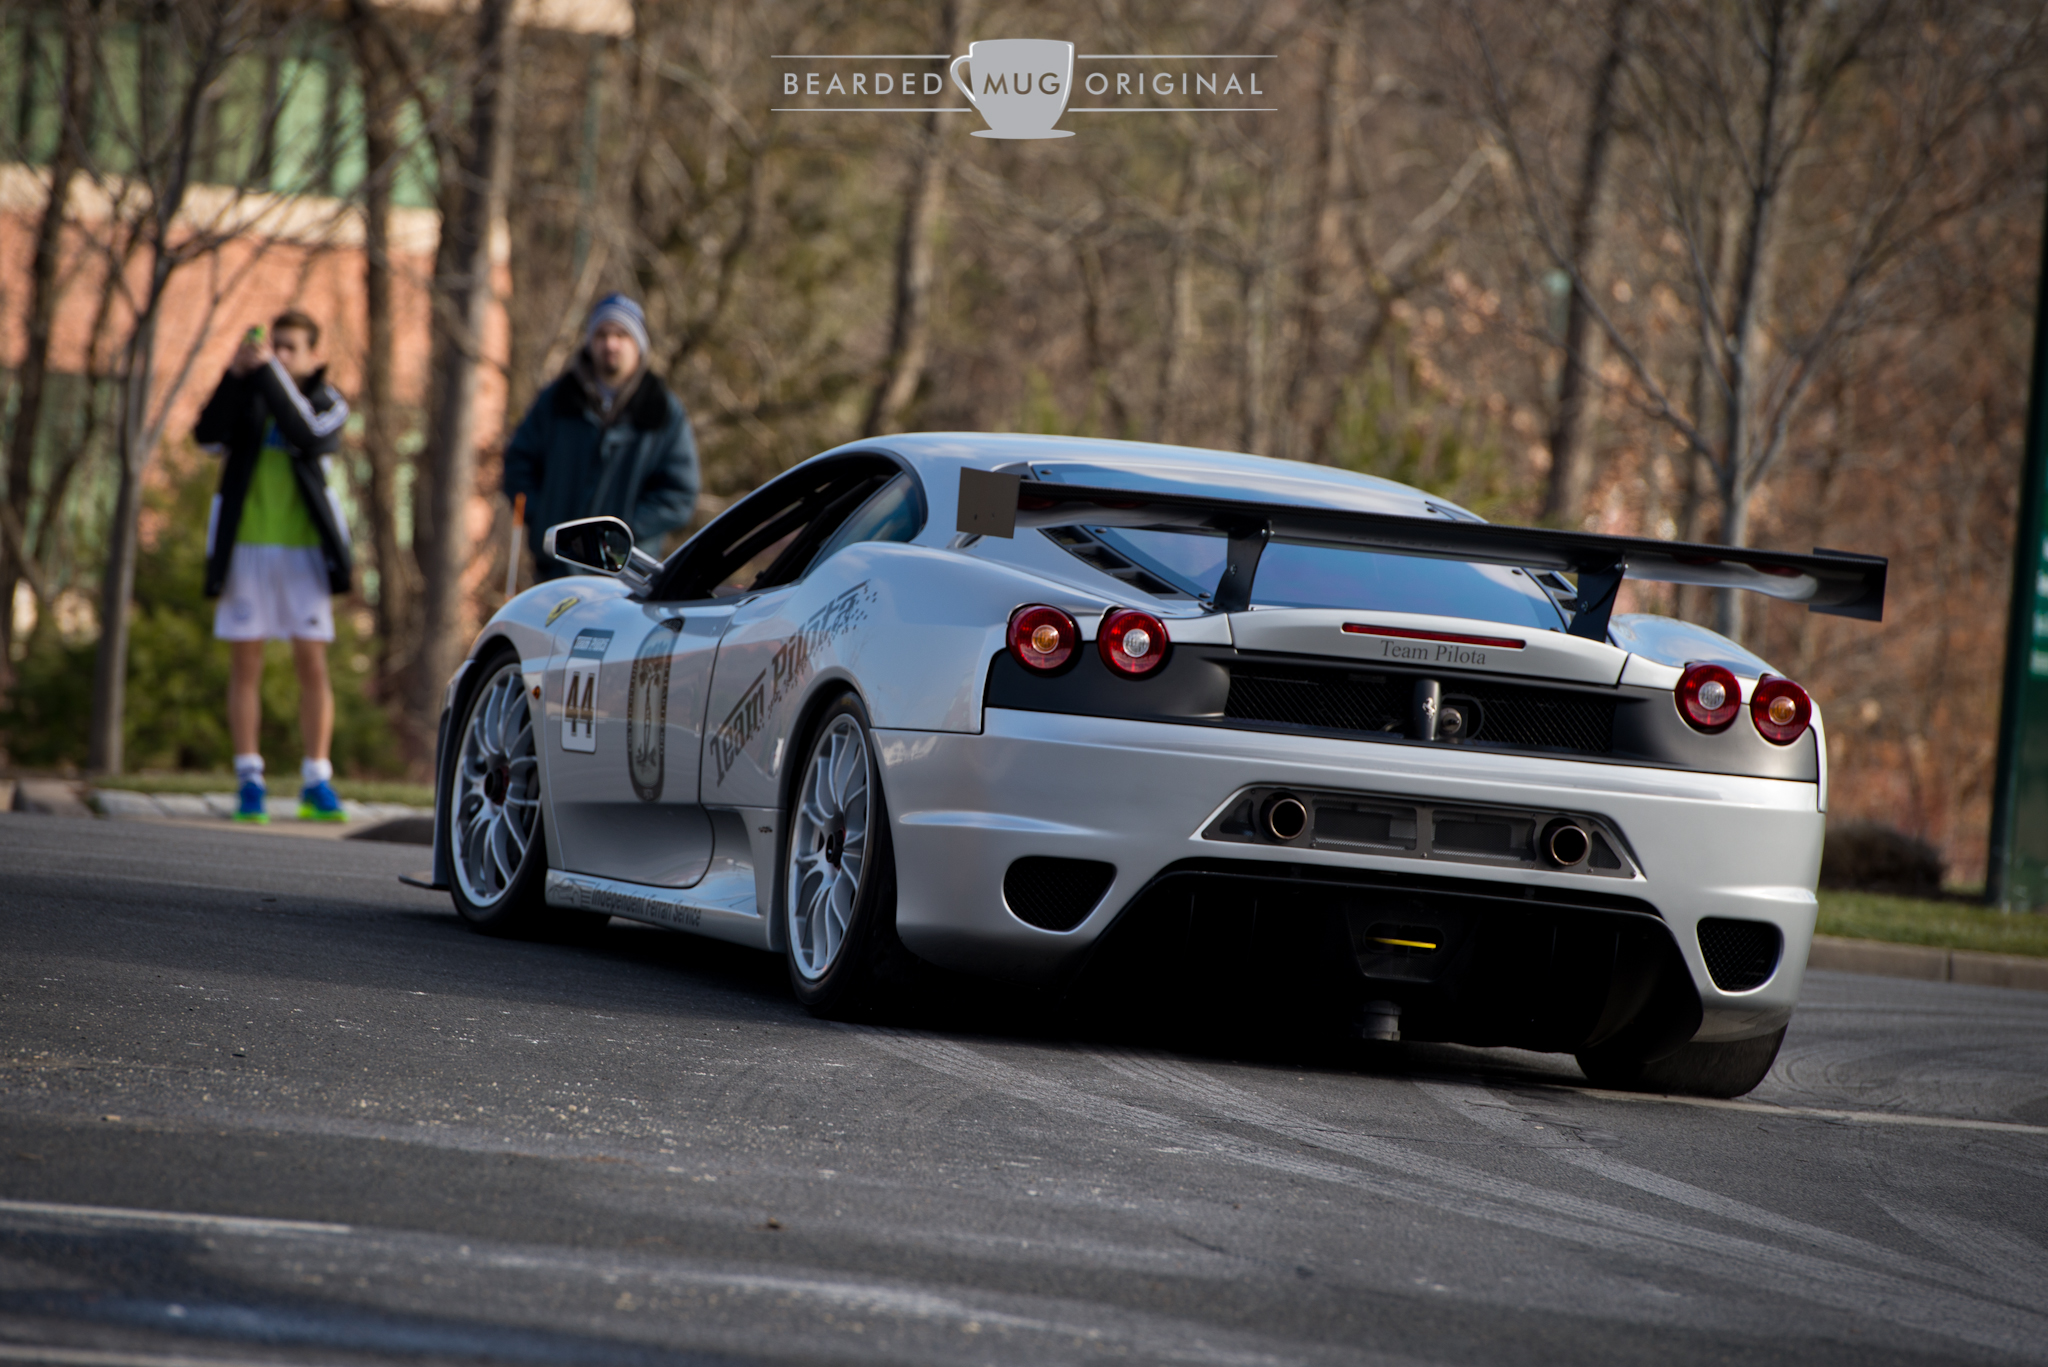 Ferrari F430 Challenge should be parked on LaSalle road, ready to thrill the lucky kid who gets a ride in the racecar.